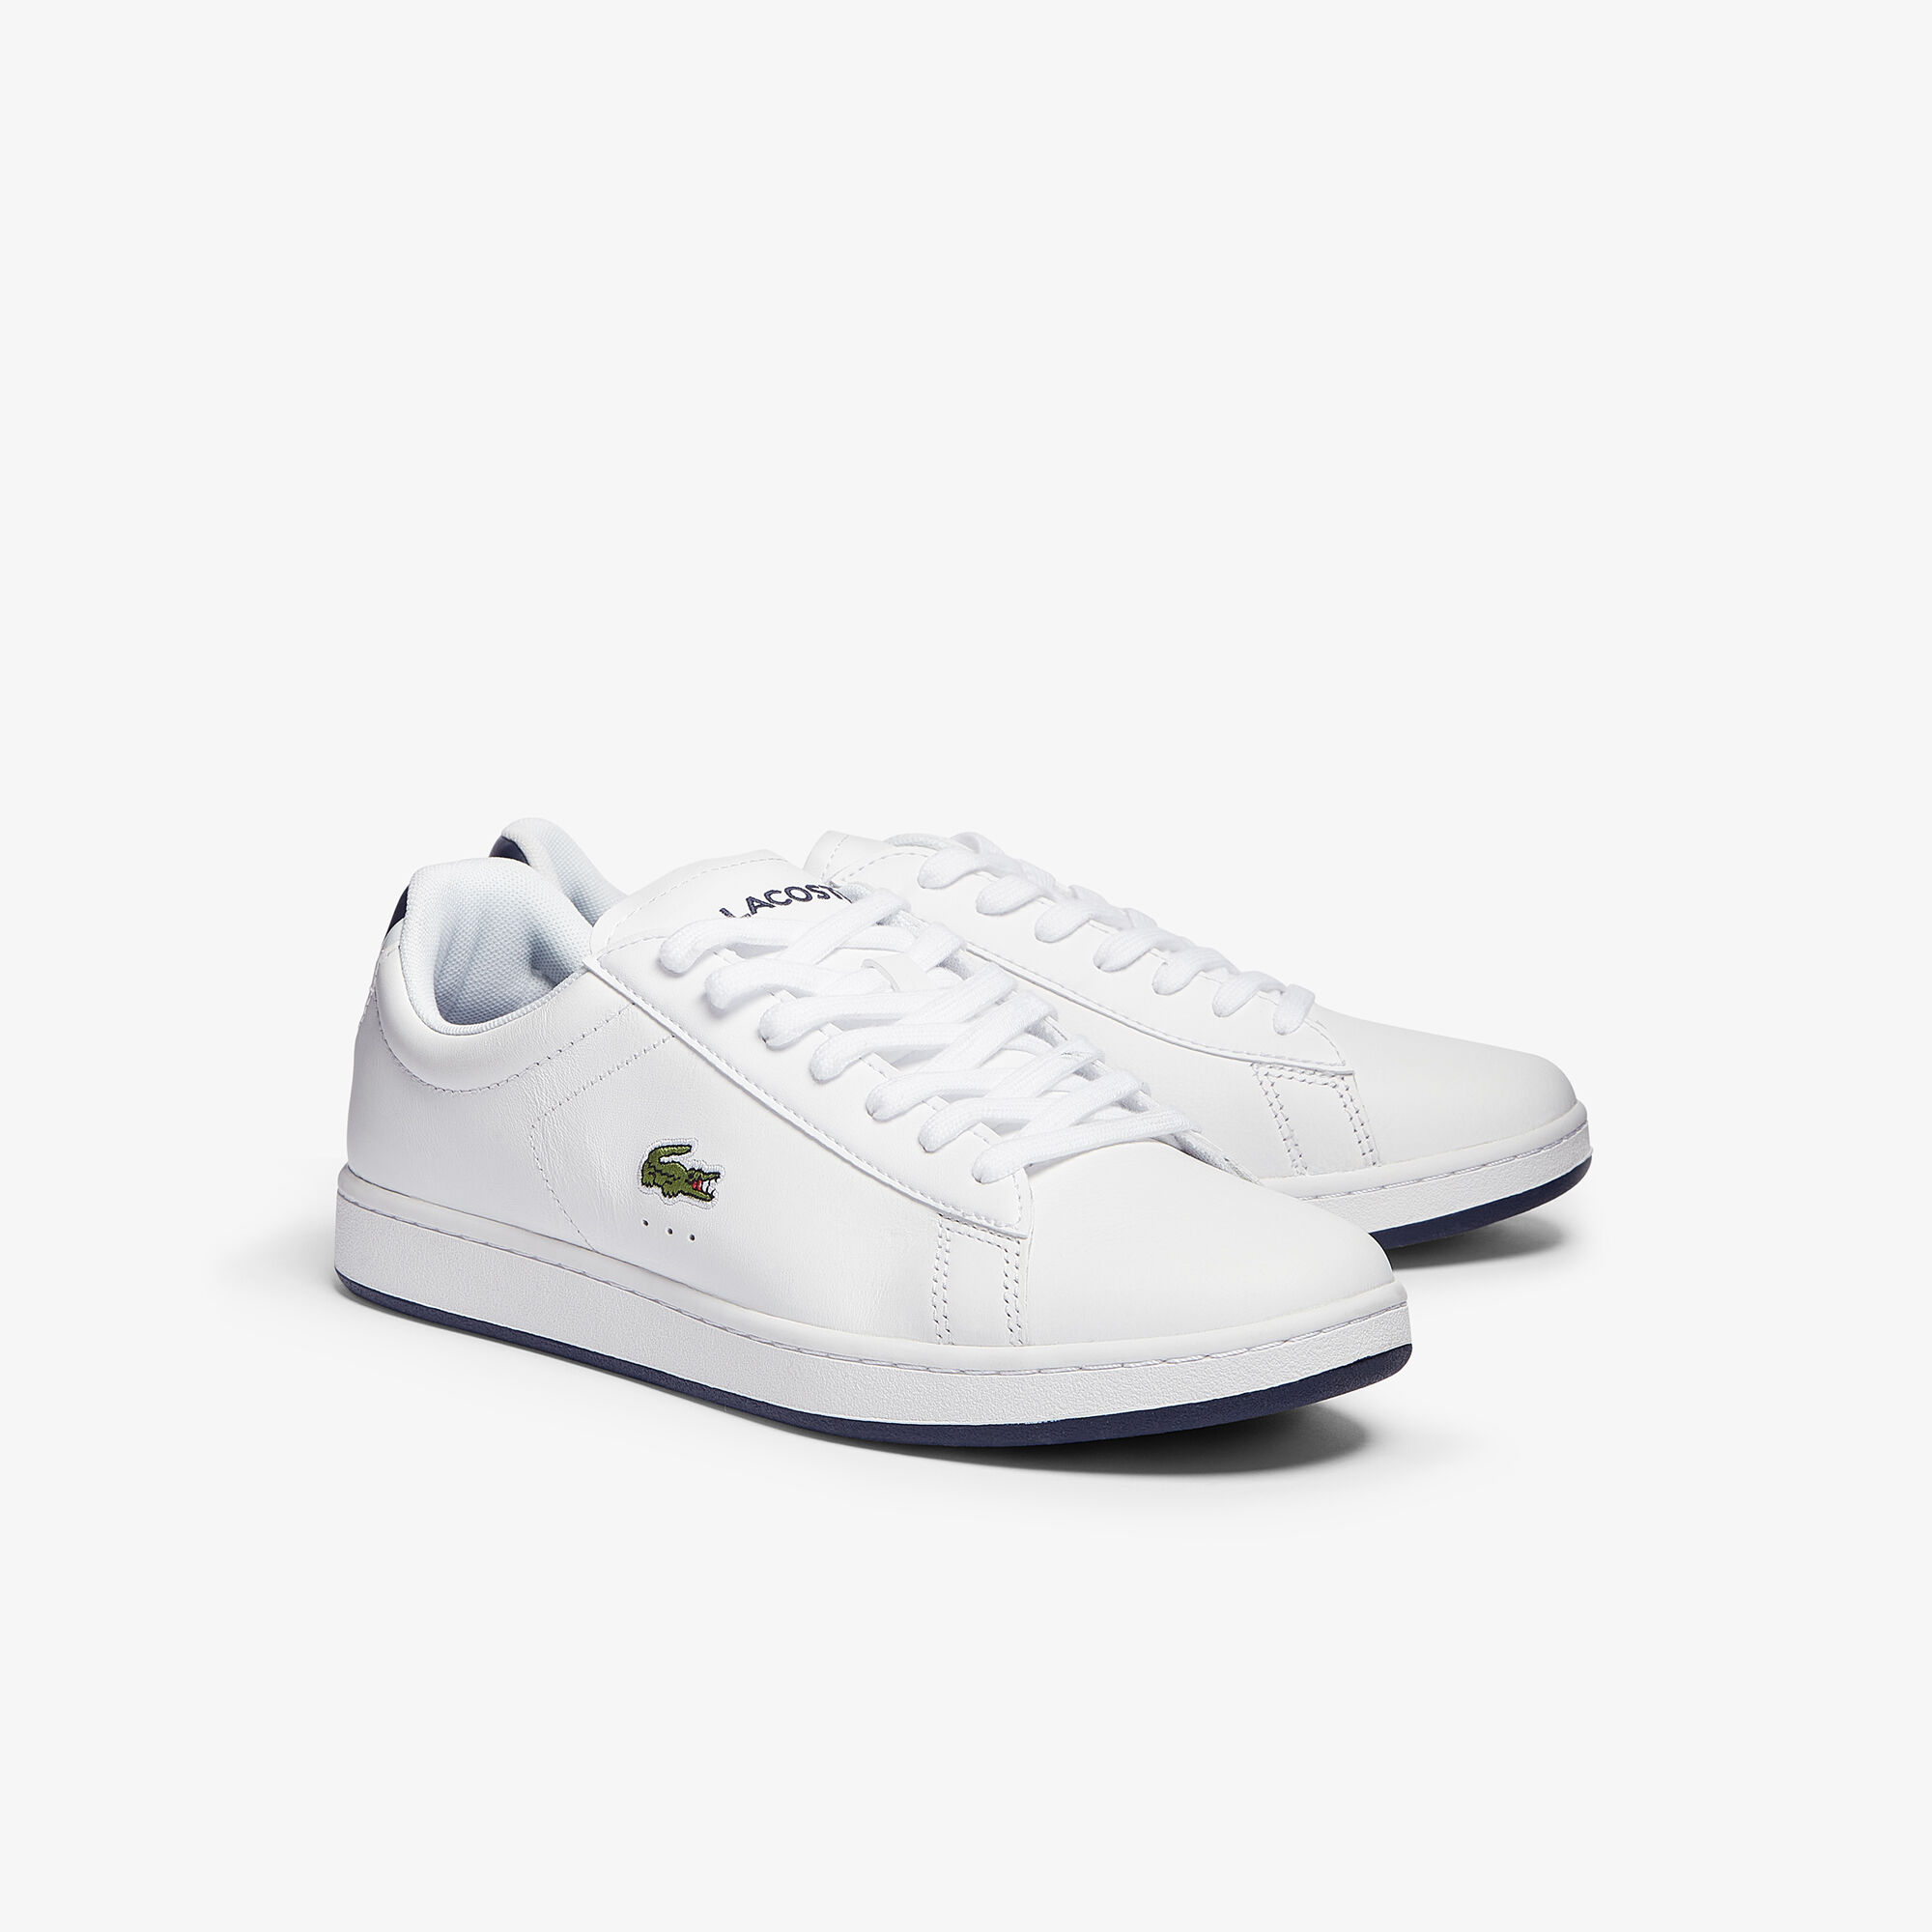 Men's Carnaby Evo Leather Trainers